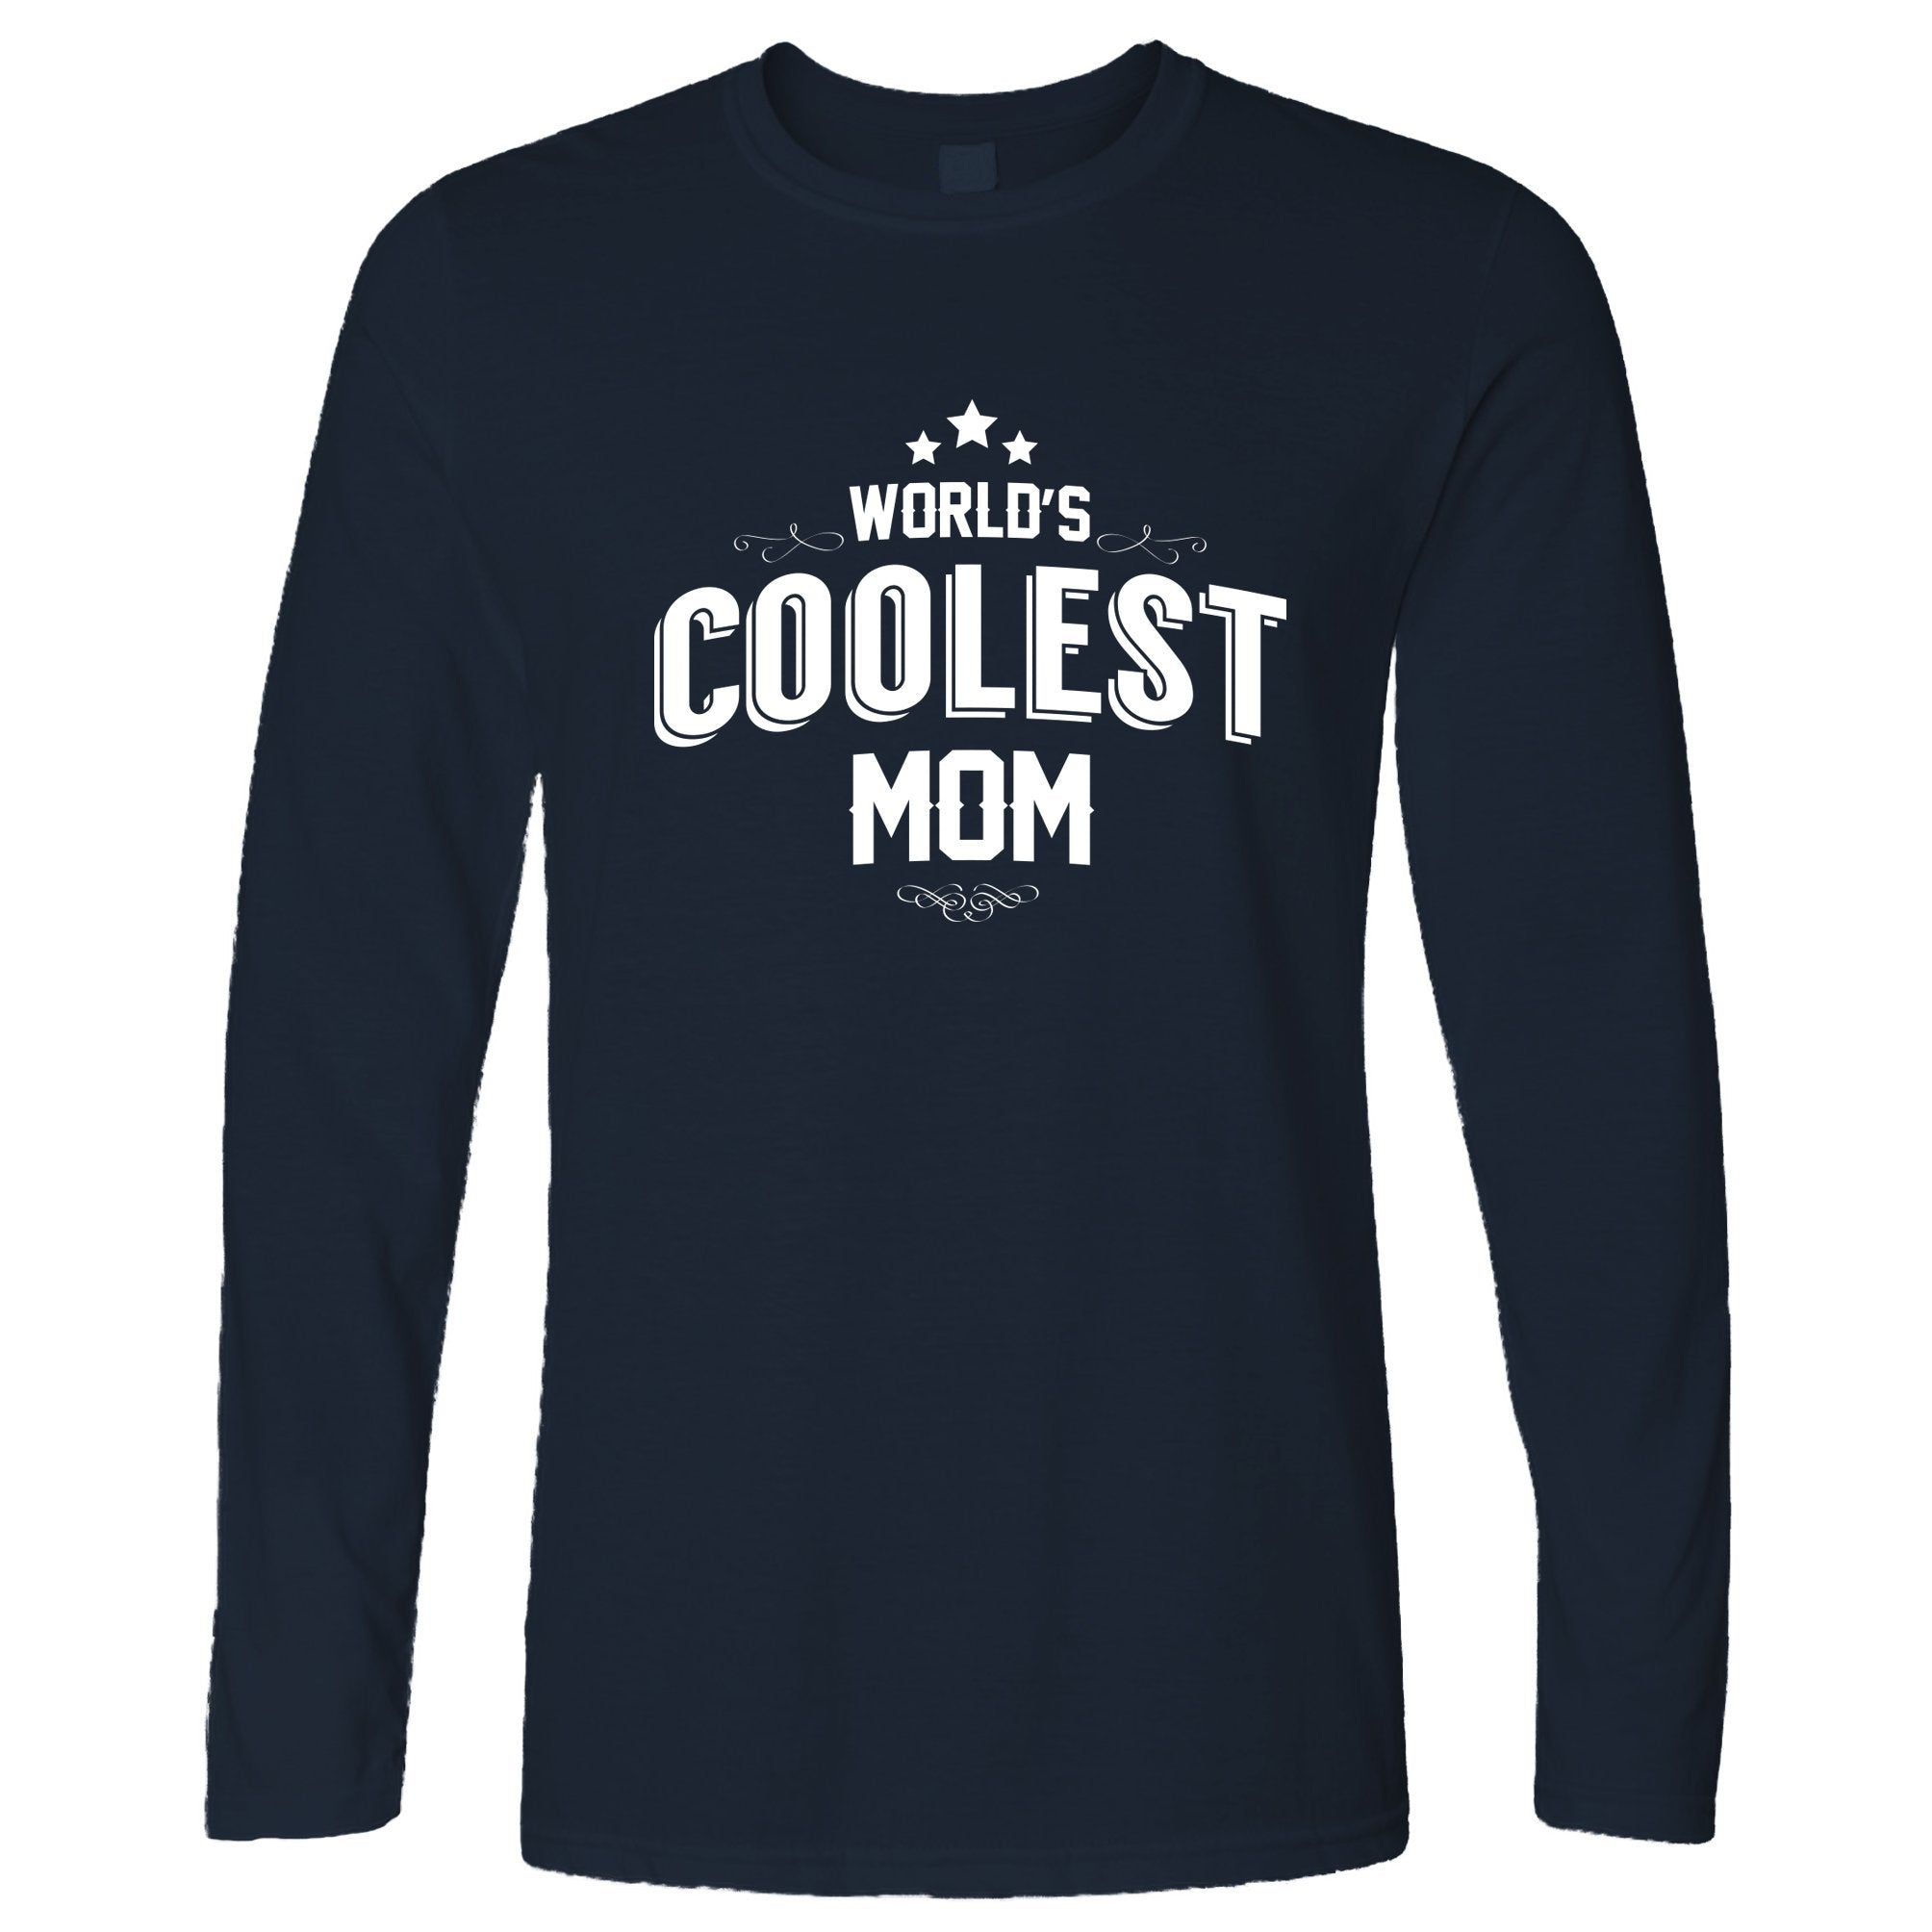 Novelty Long Sleeve Worlds Coolest Mom Slogan T-Shirt